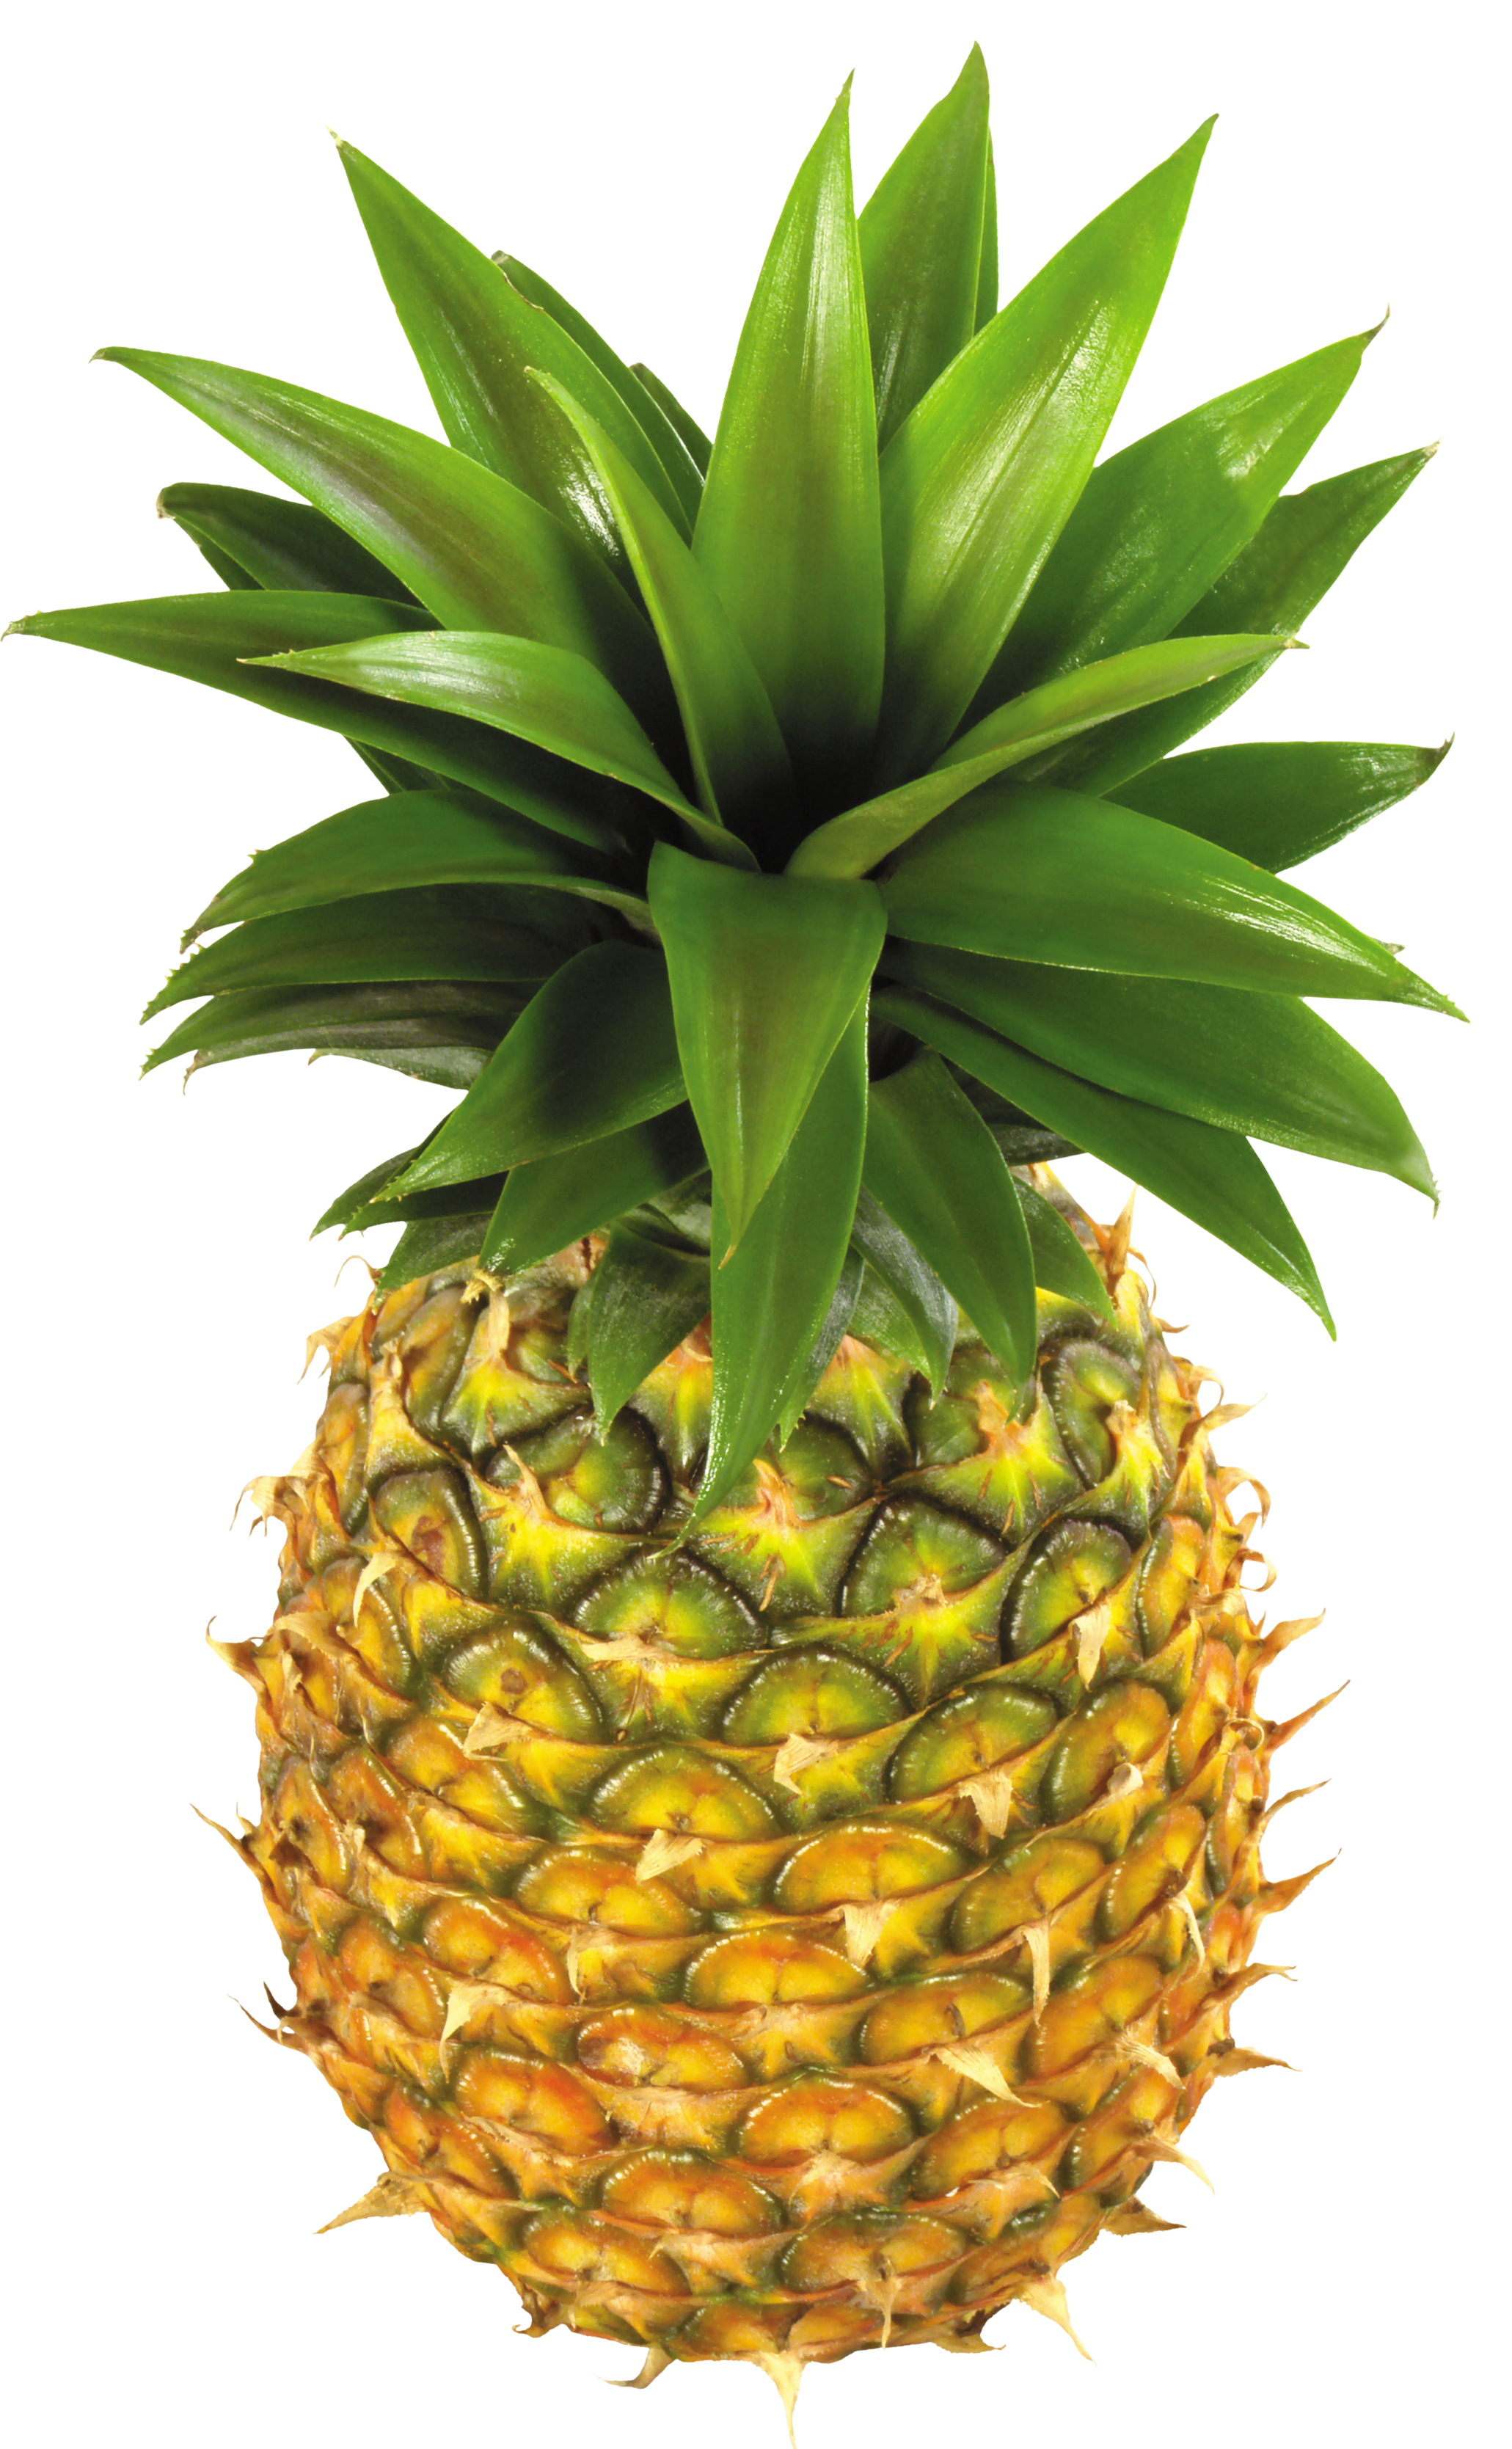 Pine apple clipart jpg download pineapple clip art free clipart images pineapple 2 | Hospsitality ... jpg download